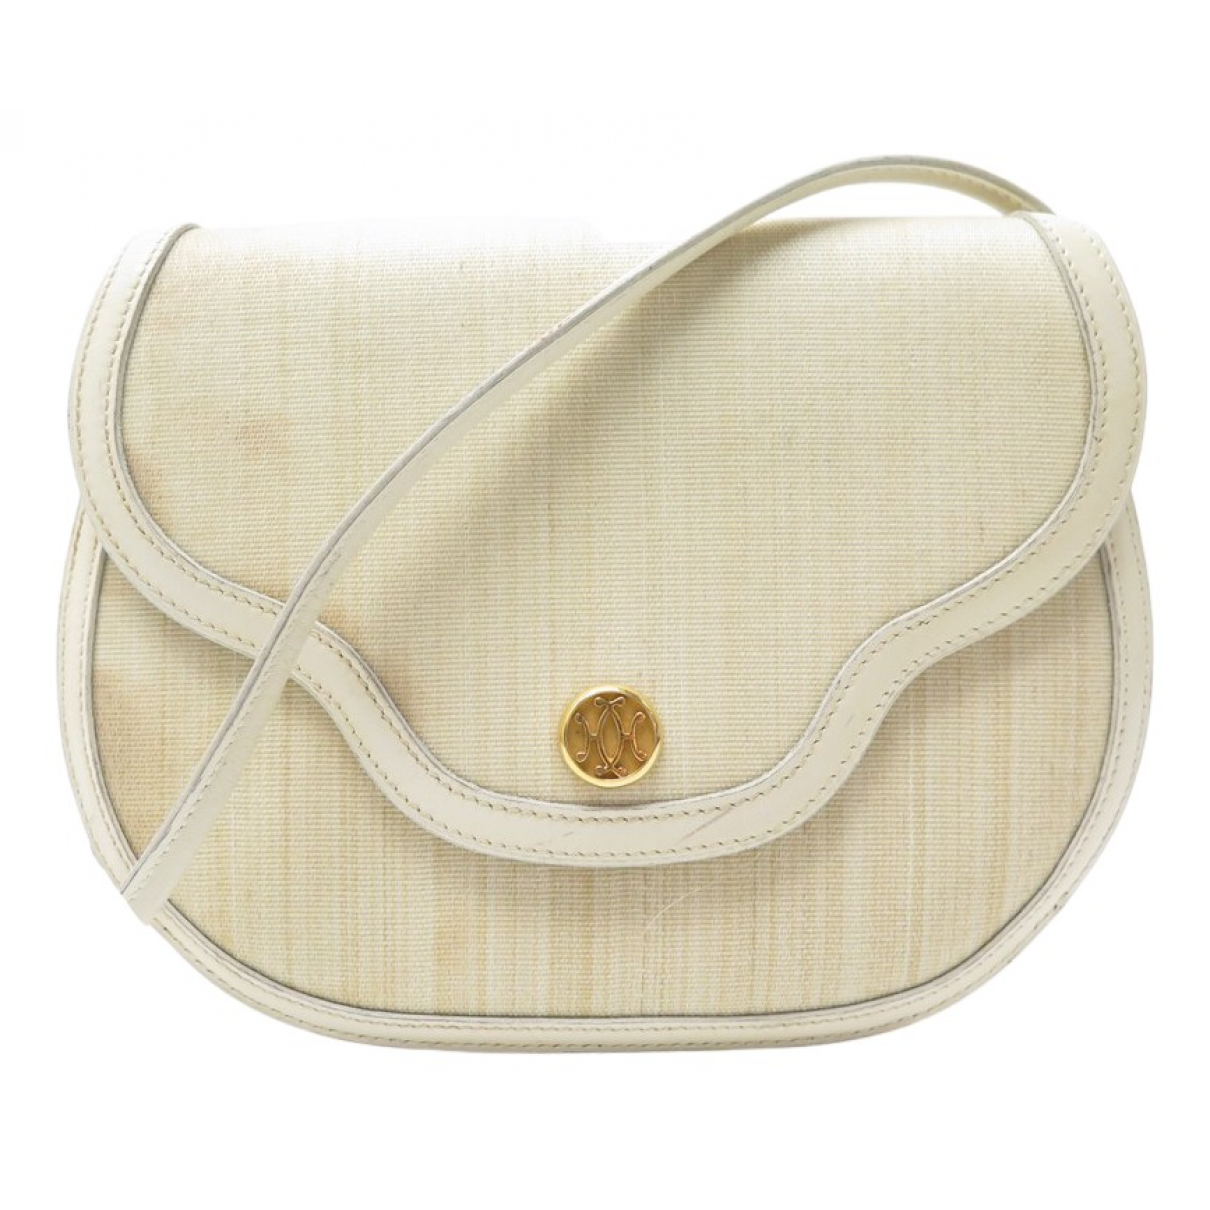 Hermès N Beige Cloth handbag for Women N